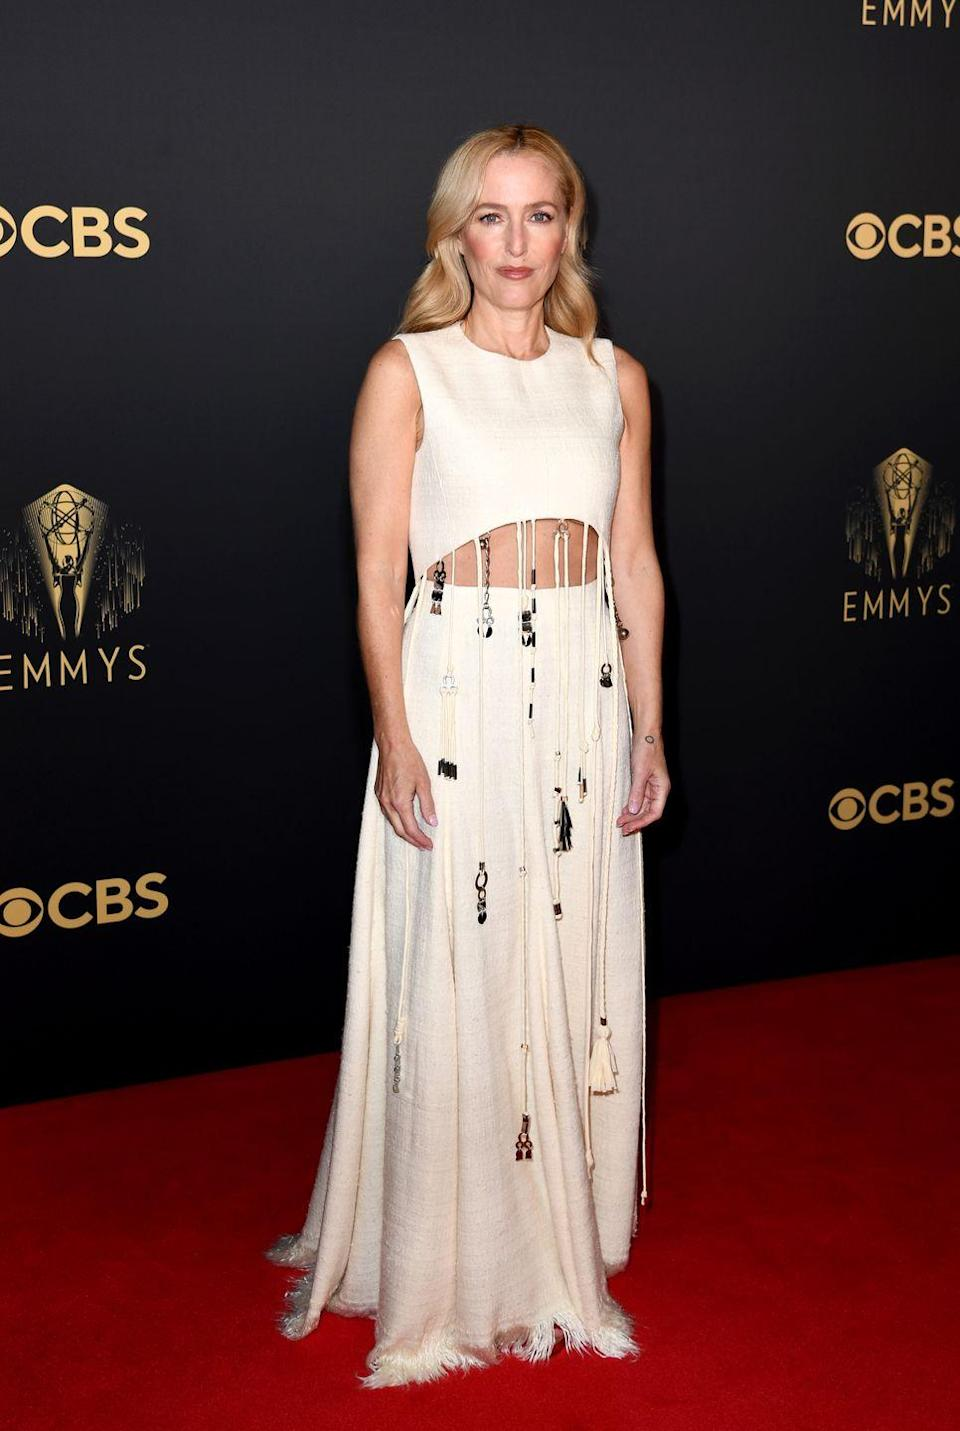 <p>Gillian Anderson had some fun with her 2021 Emmy look, wearing a white gown by Chloé with a cut-out detail and plenty of fringing.</p>